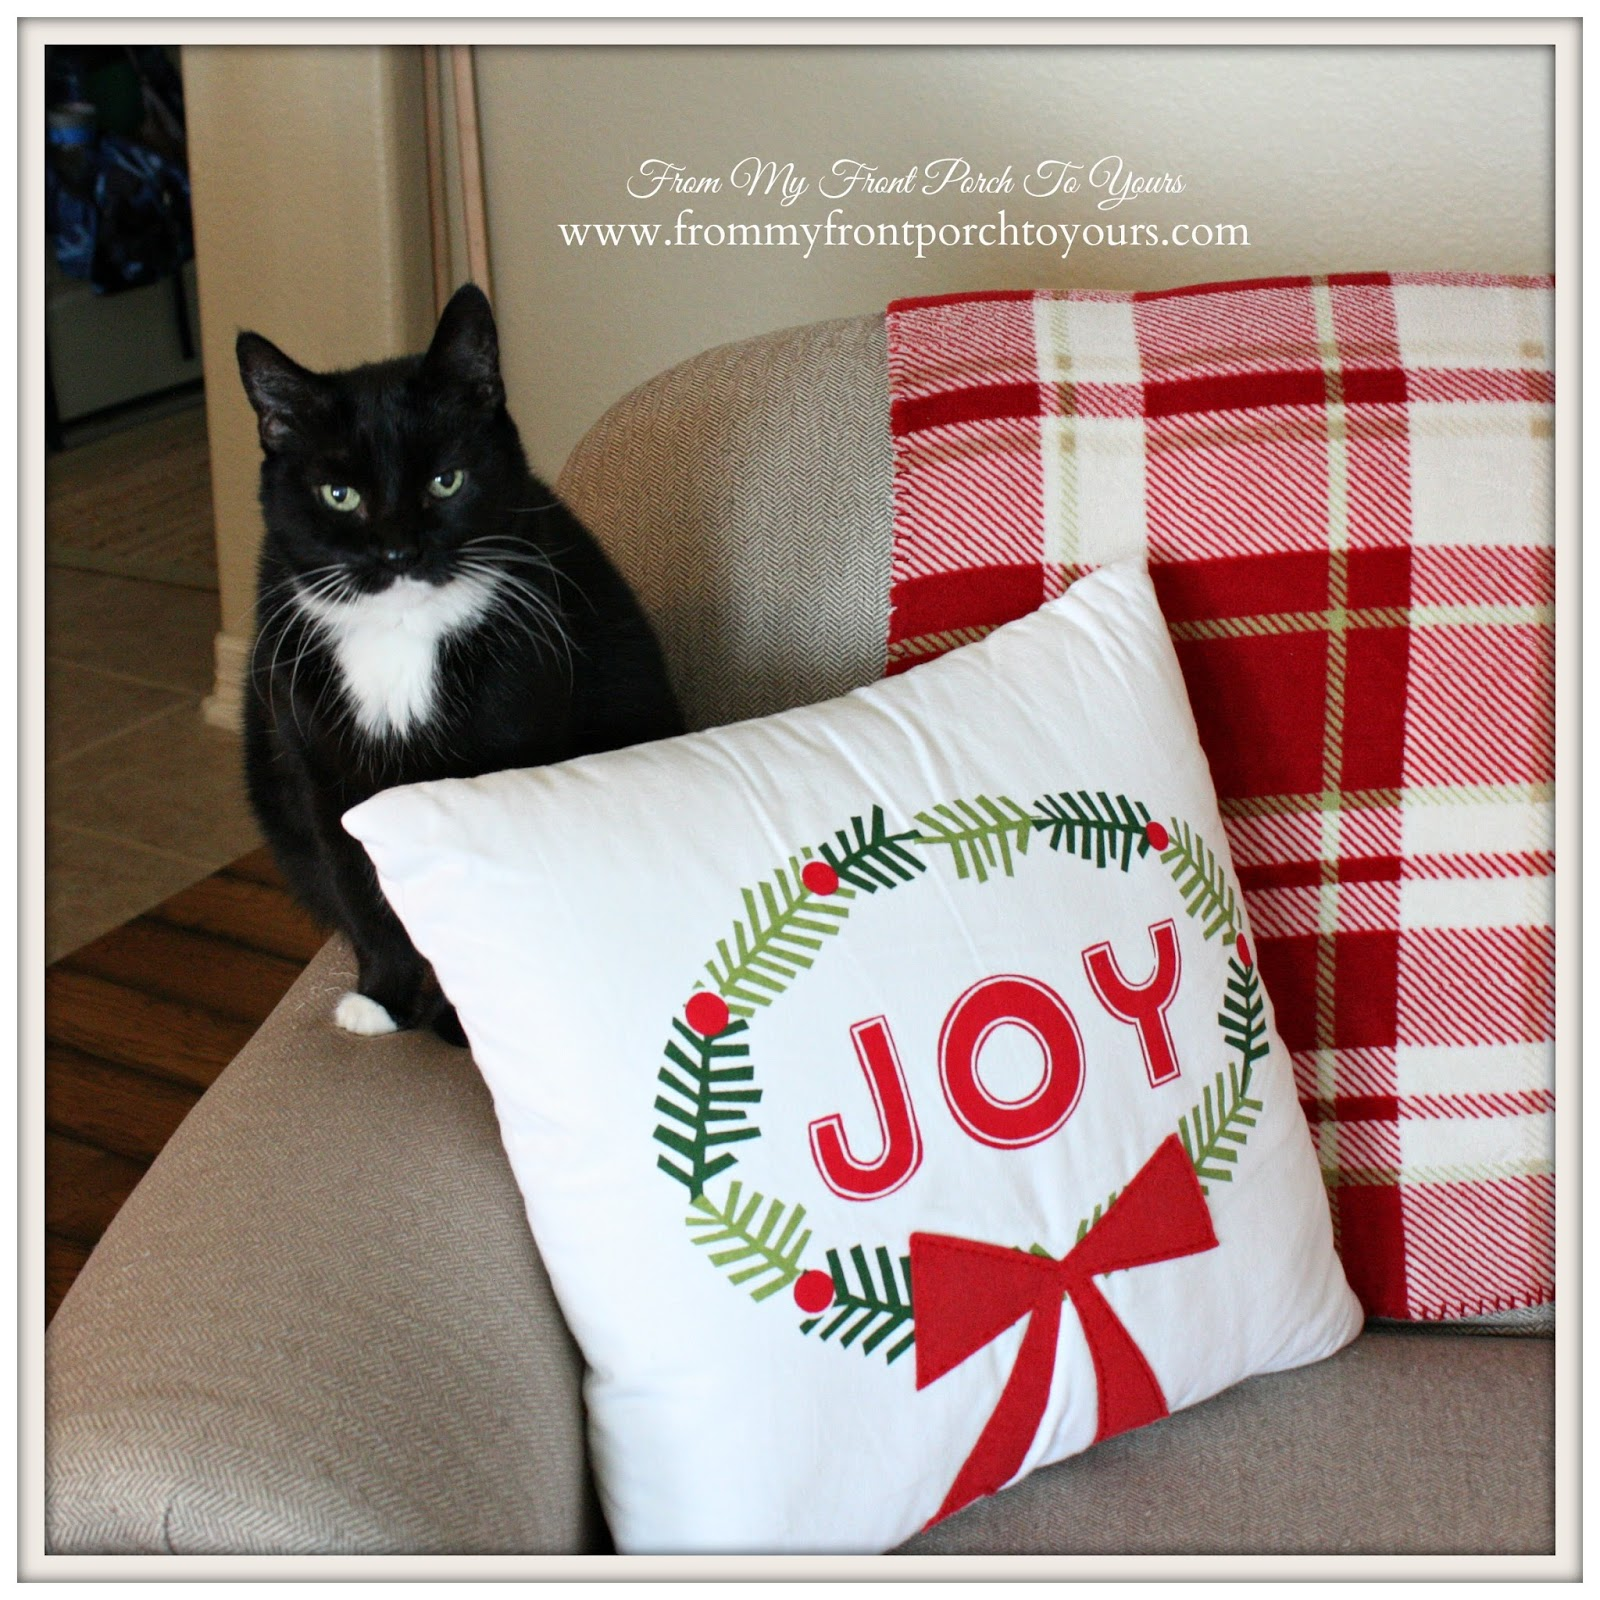 Joy Pillow- Farmhouse Vintage Christmas Living Room- From My Front Porch To Yours